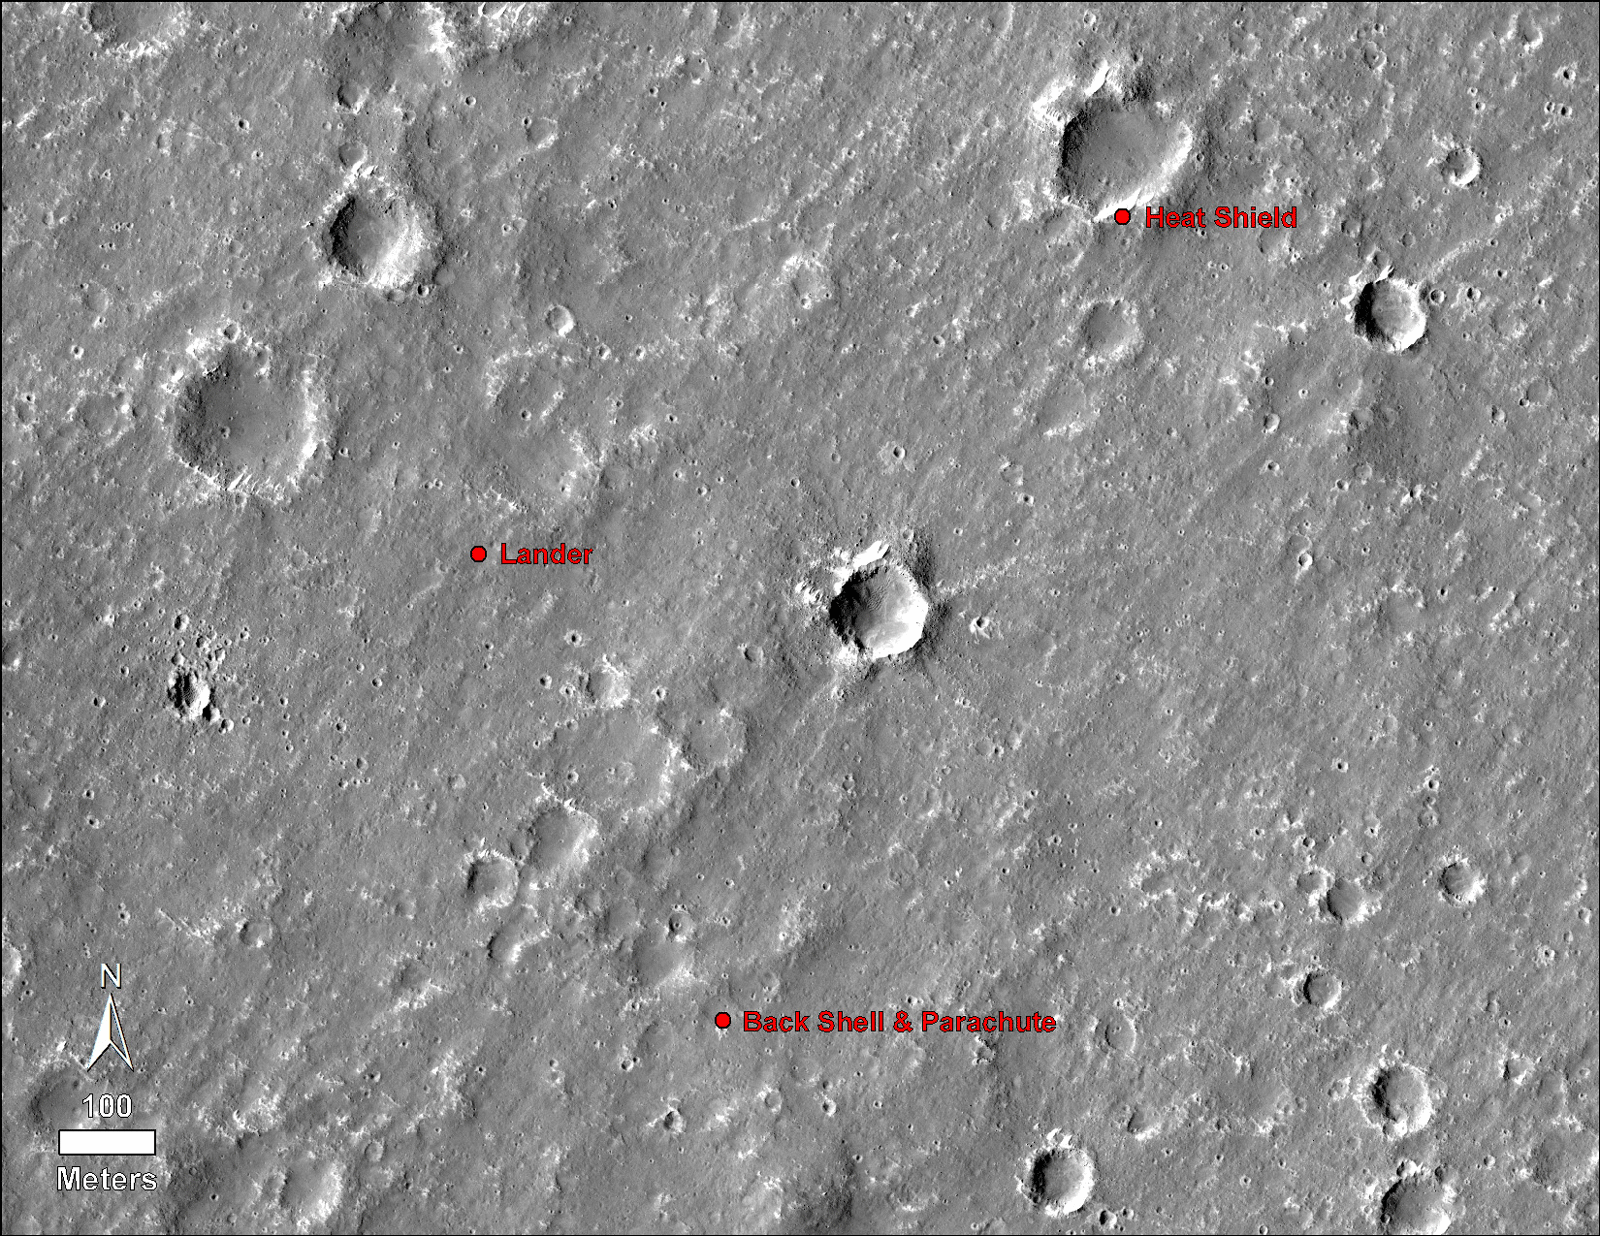 An annotated image of the surface of Mars, taken by the HiRISE camera on NASA's Mars Reconnaissance Orbiter (MRO) on May 30, 2014. The annotations — added after InSight landed on Nov. 26, 2018 — display the locations of NASA's InSight lander, its heat shield and parachute.